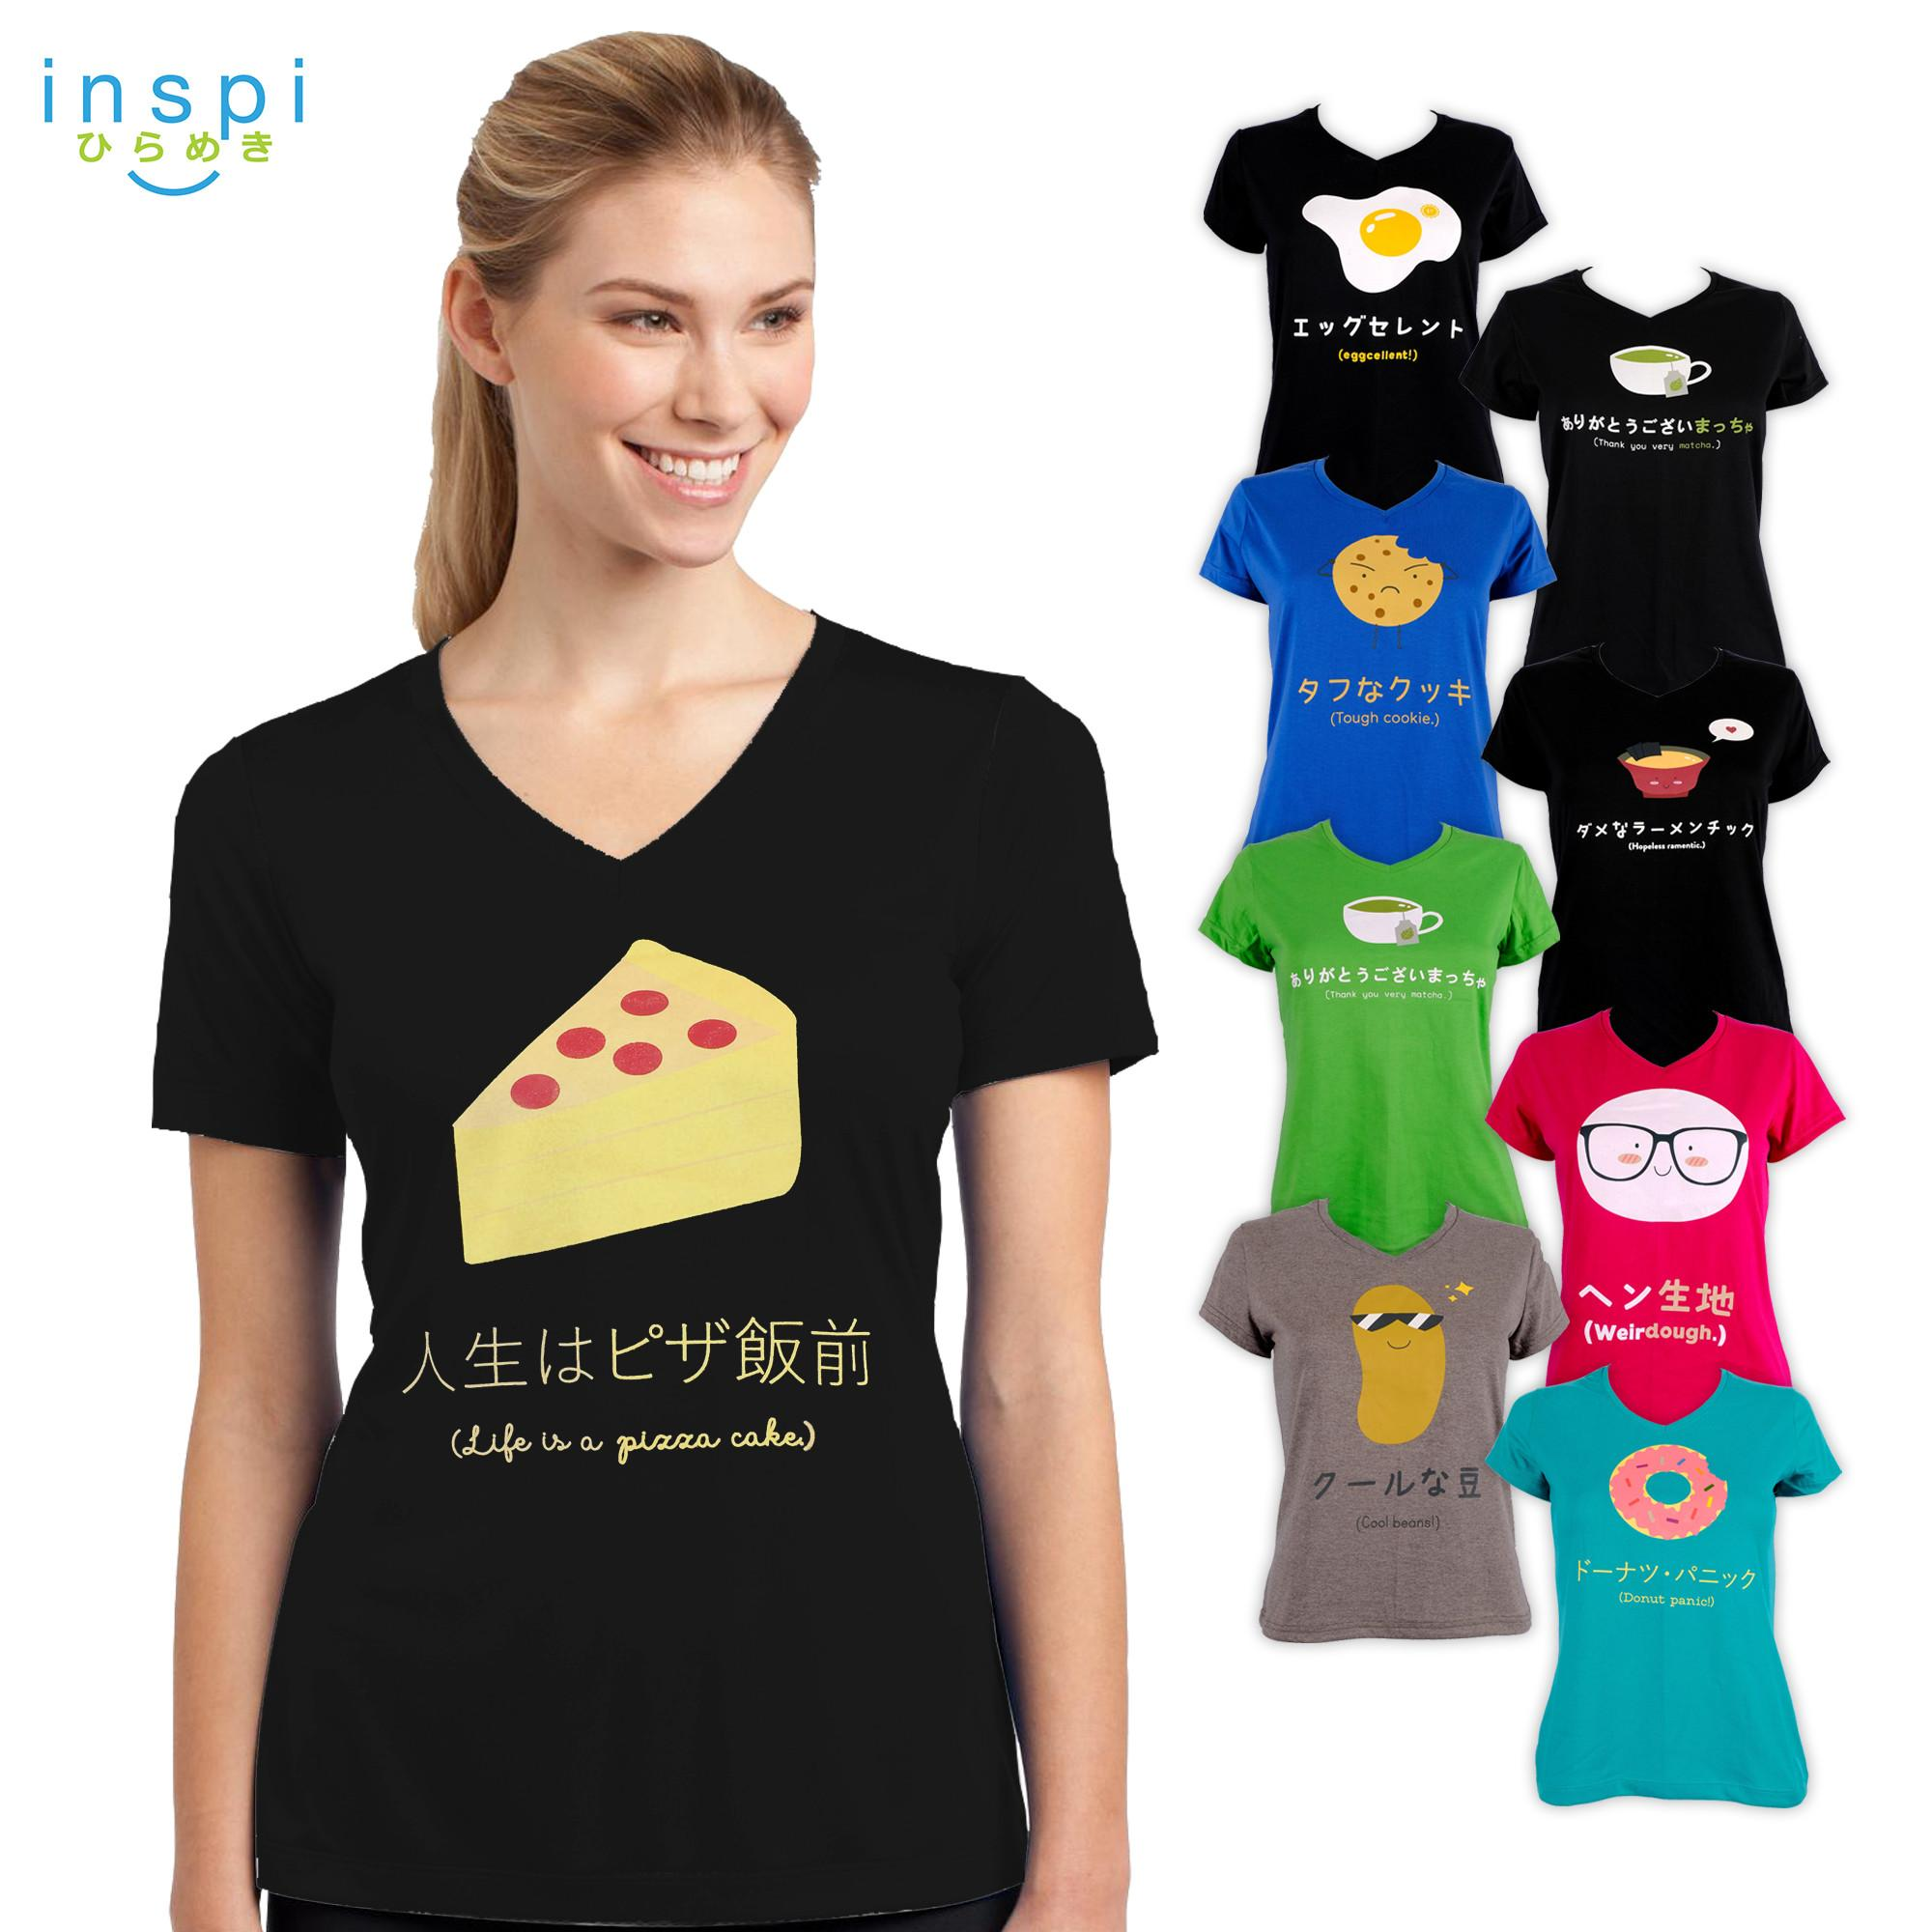 Shirts for Women for sale - Tops for Women online brands d7cc40a8847a